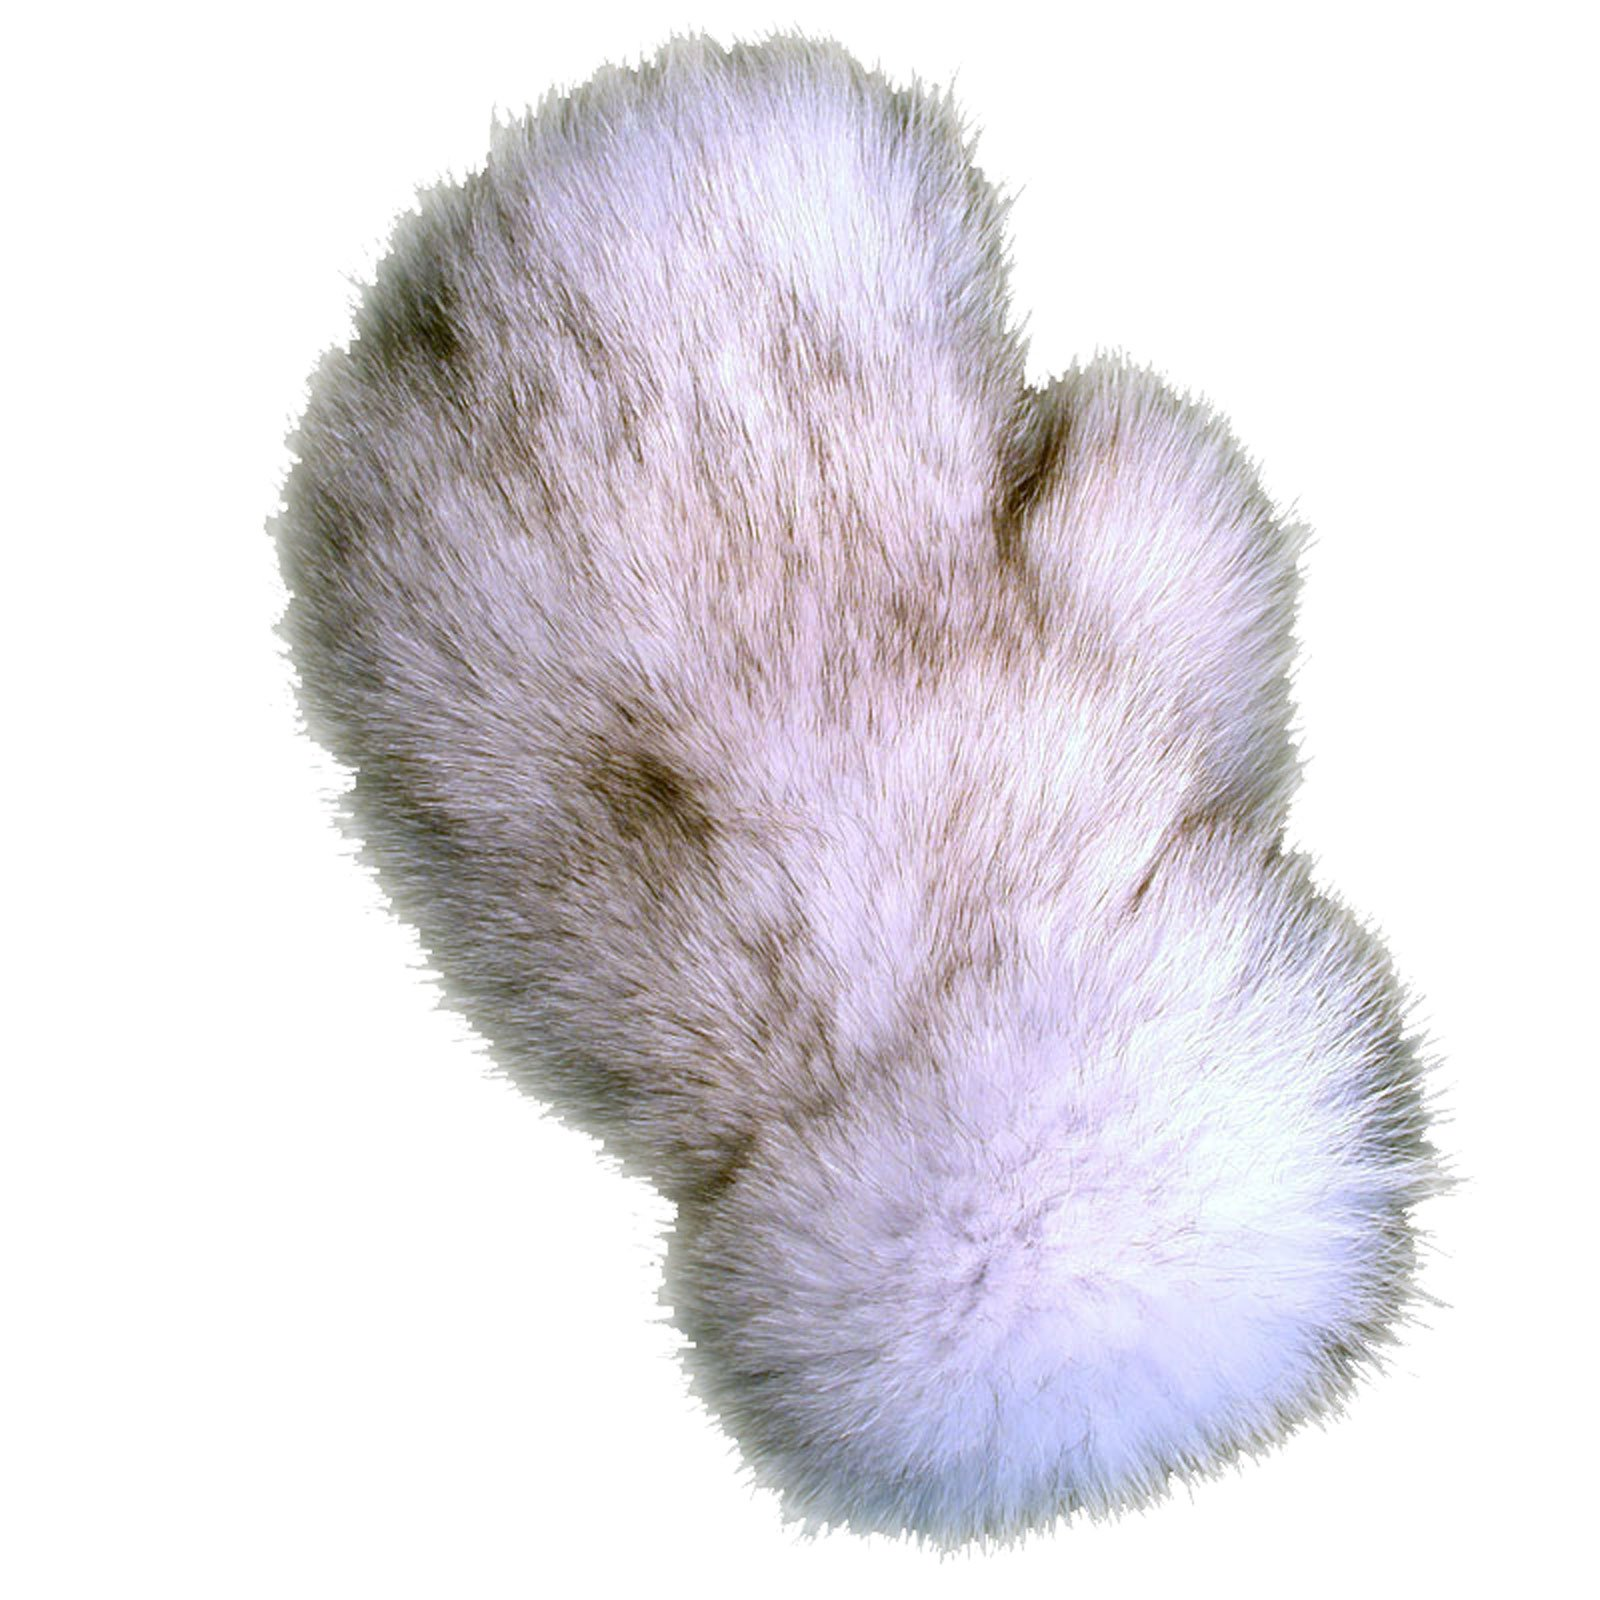 MinkgLove Fox Massage Glove, Textured and Silky Soft Feel, Natural Blue Fox Color, Hand Tailored, Unisex, One Size - Double Sided Fur